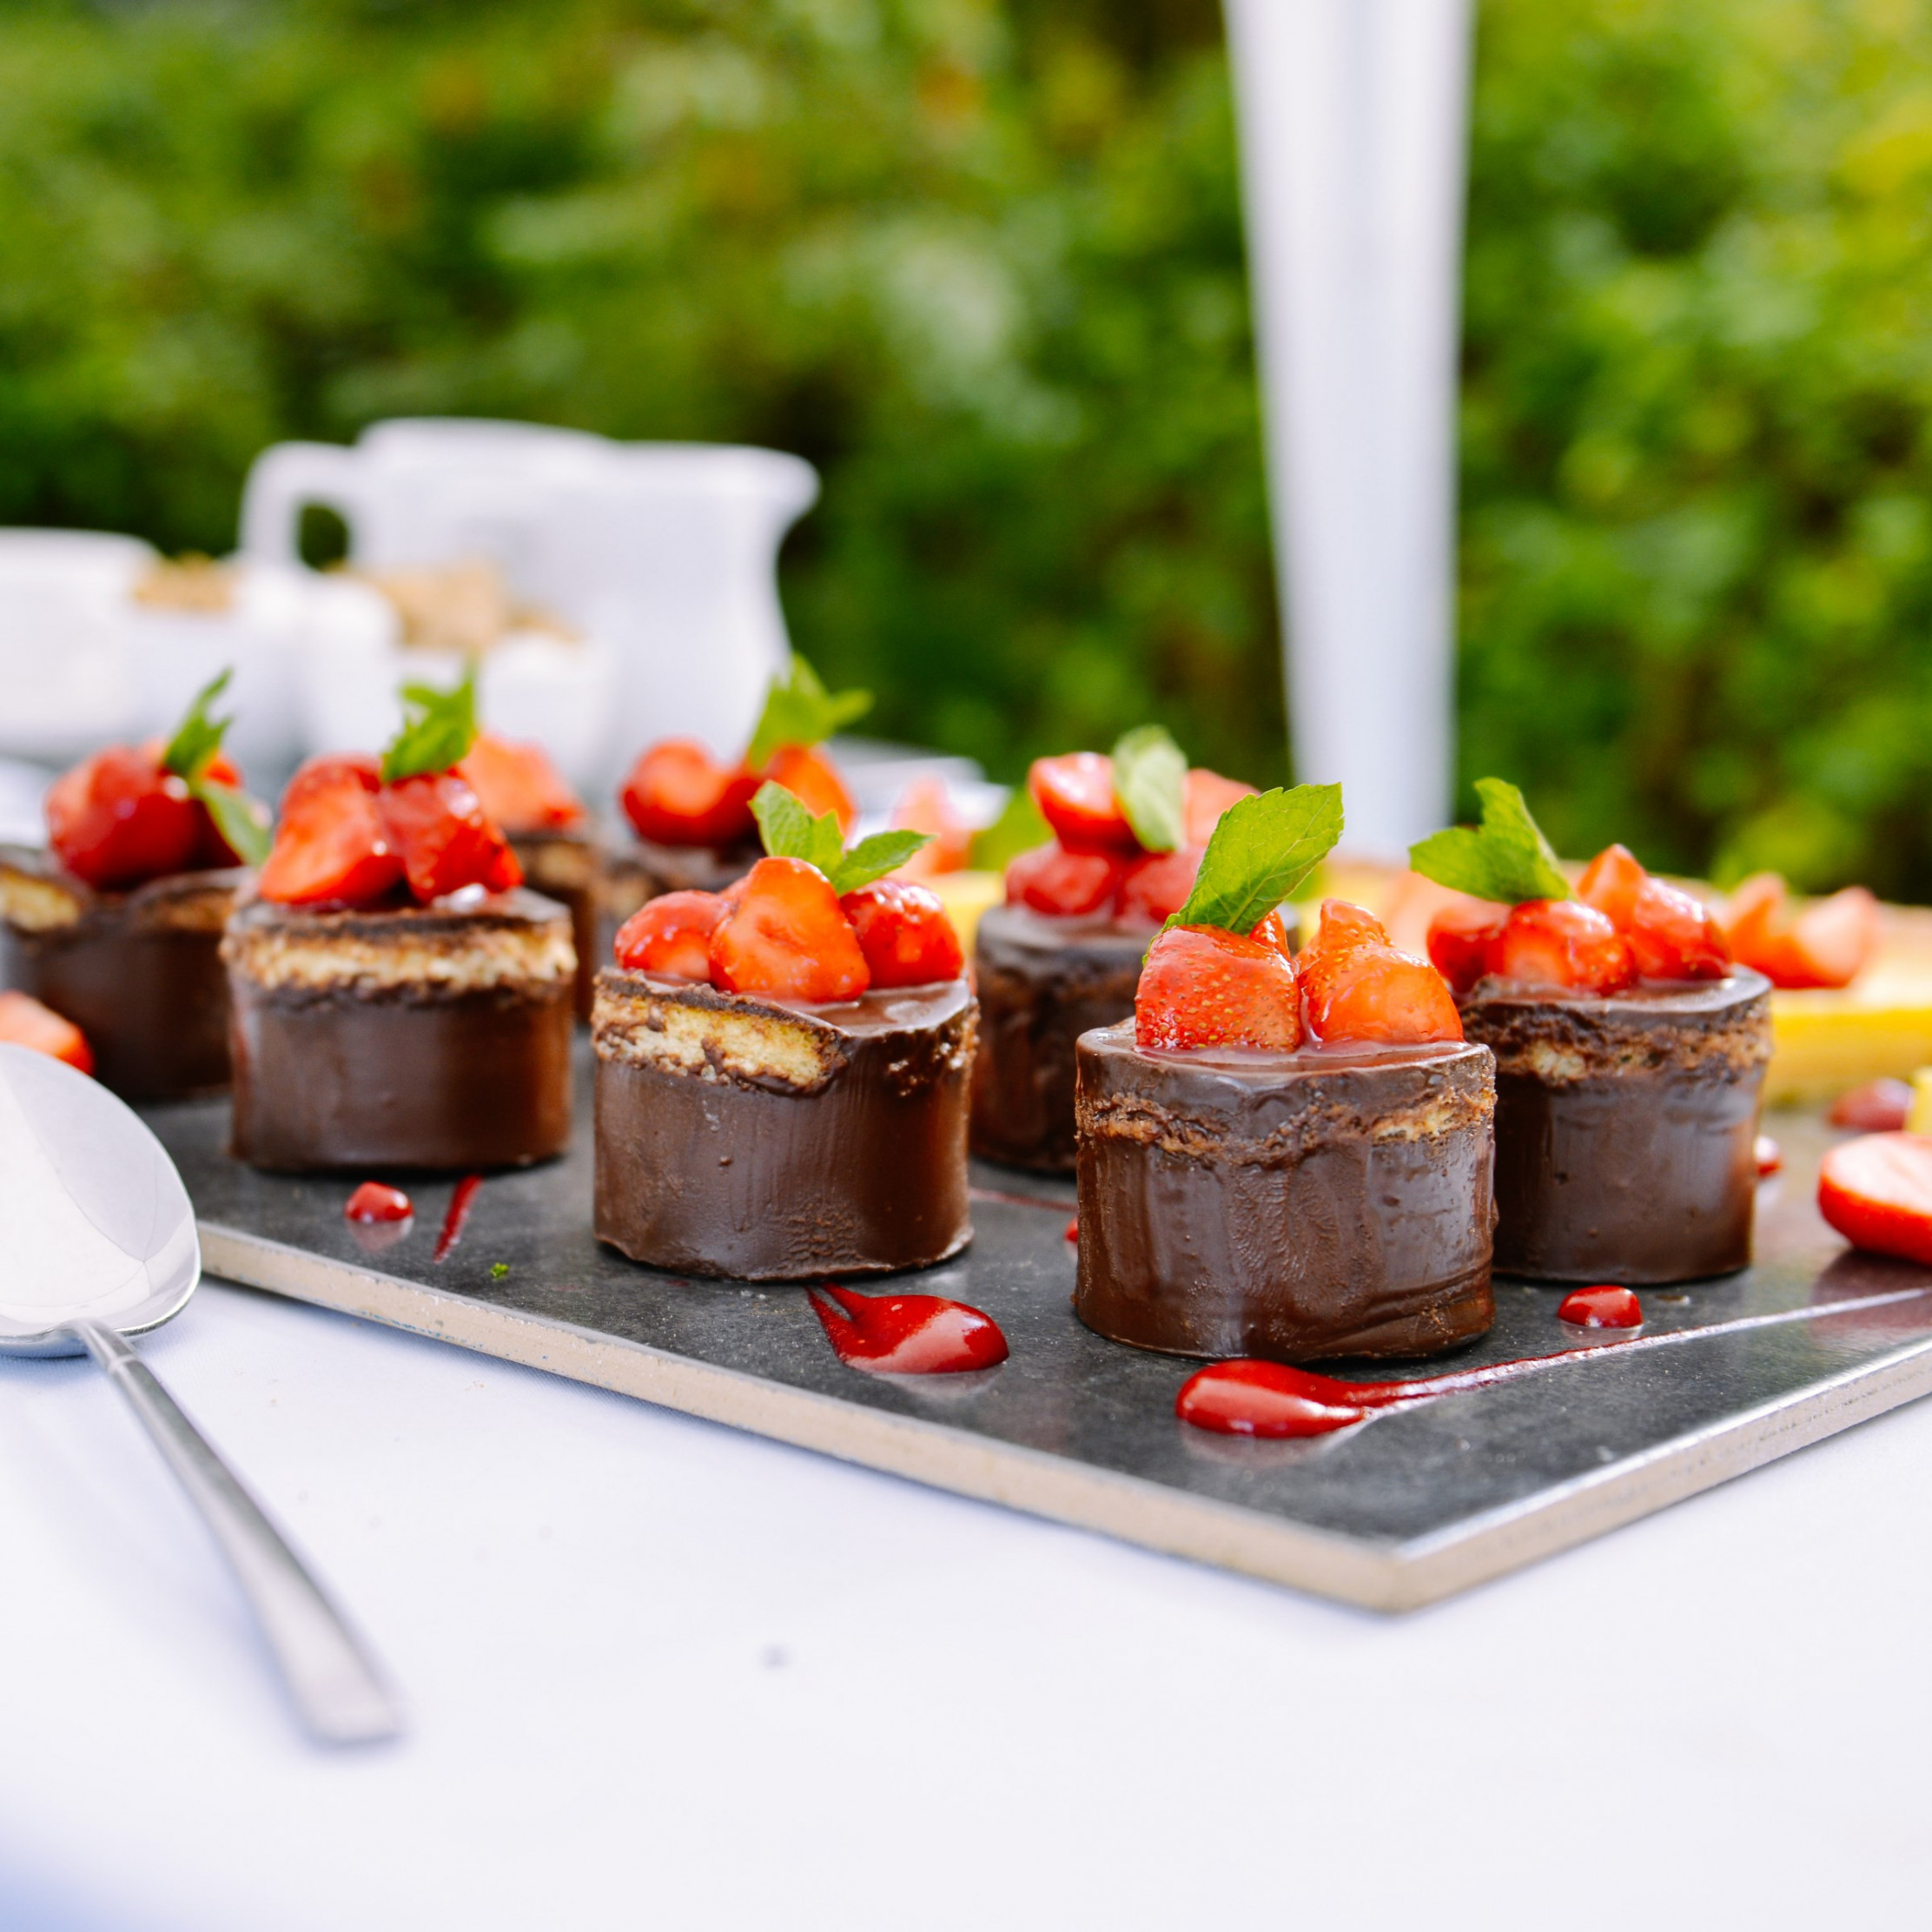 Chocolate cakes with strawberries | 2224x2224 wallpaper